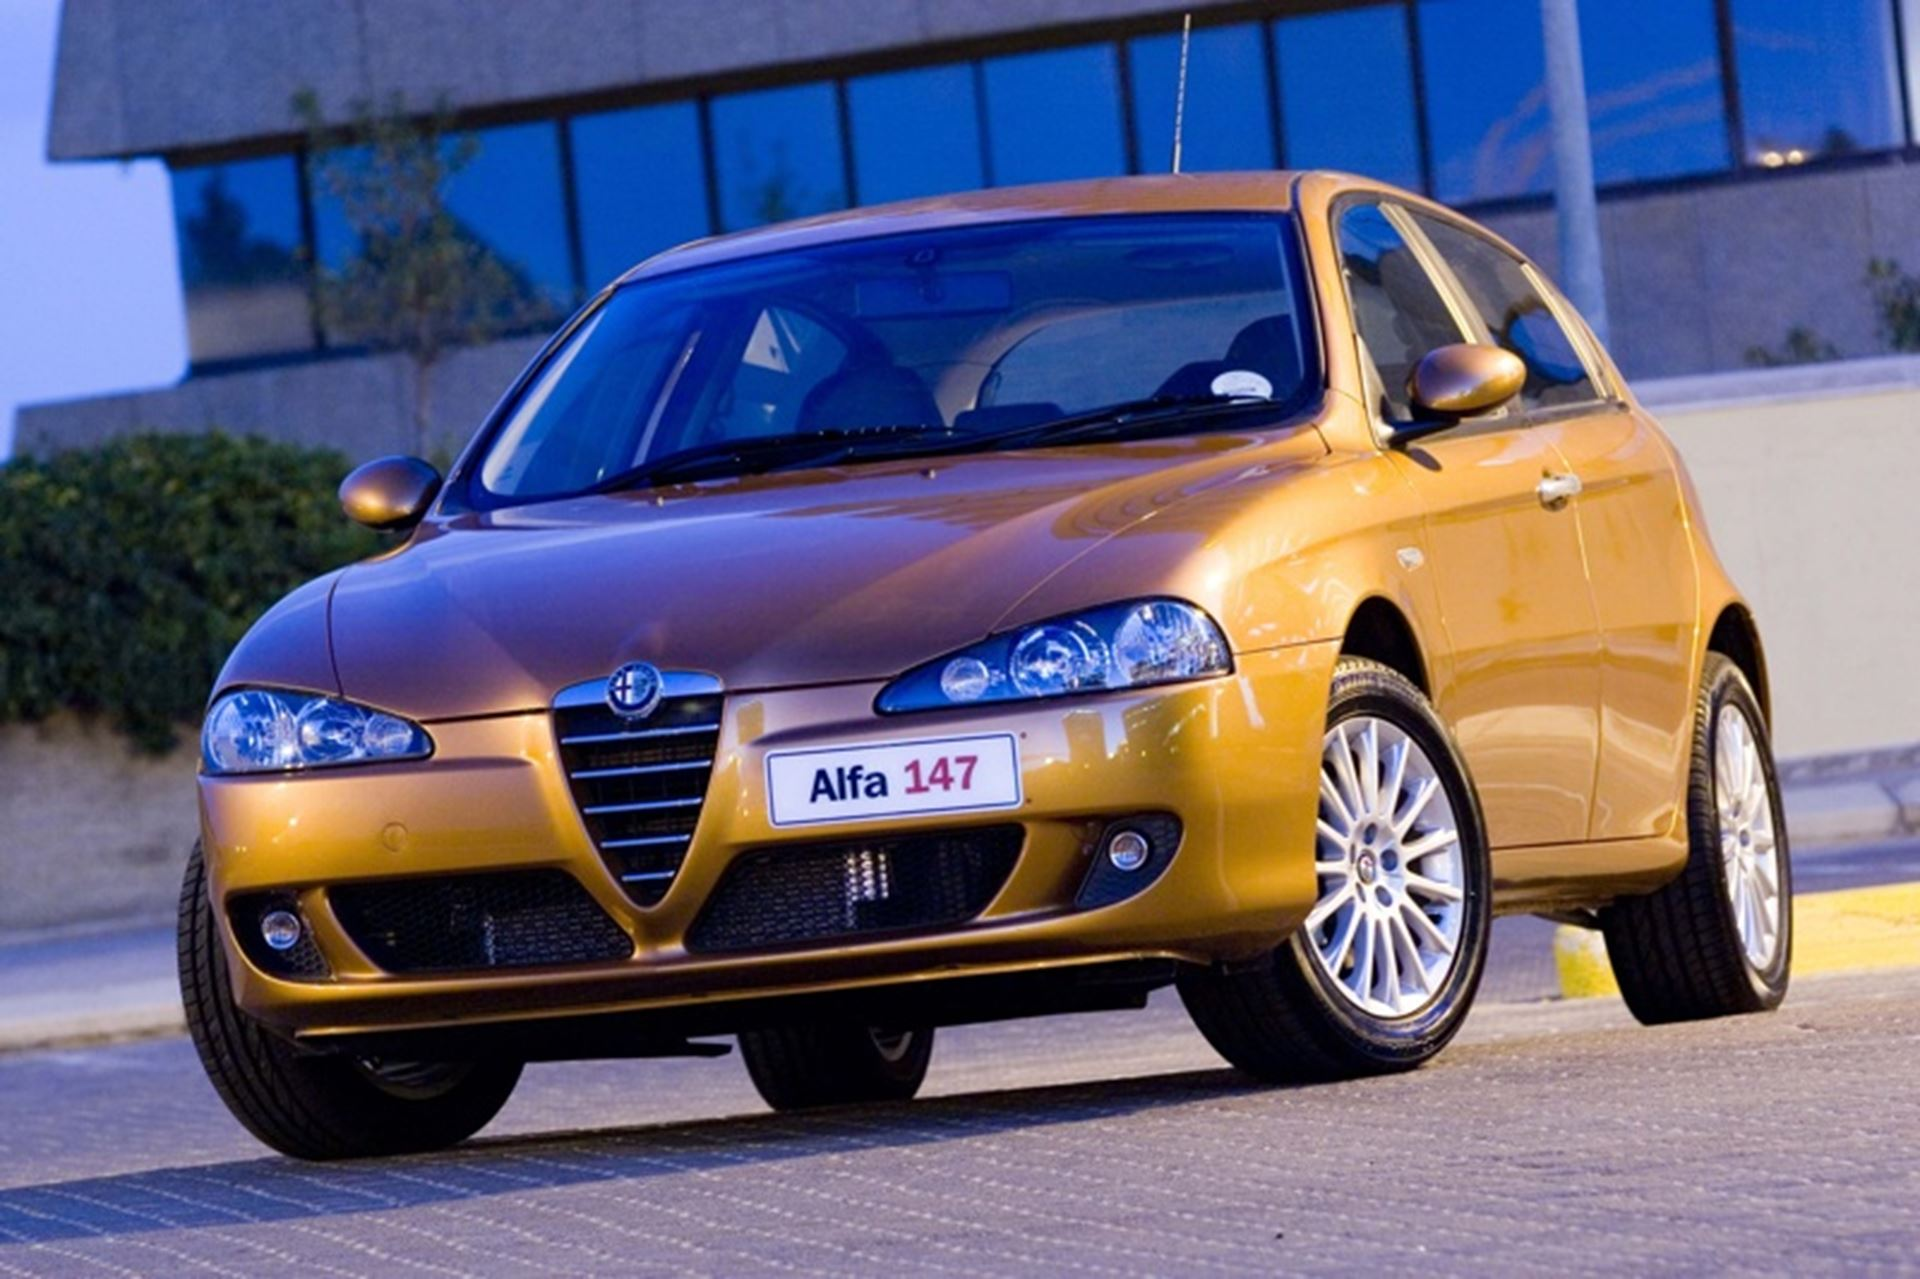 New Alfa Romeo 147 In South Africa